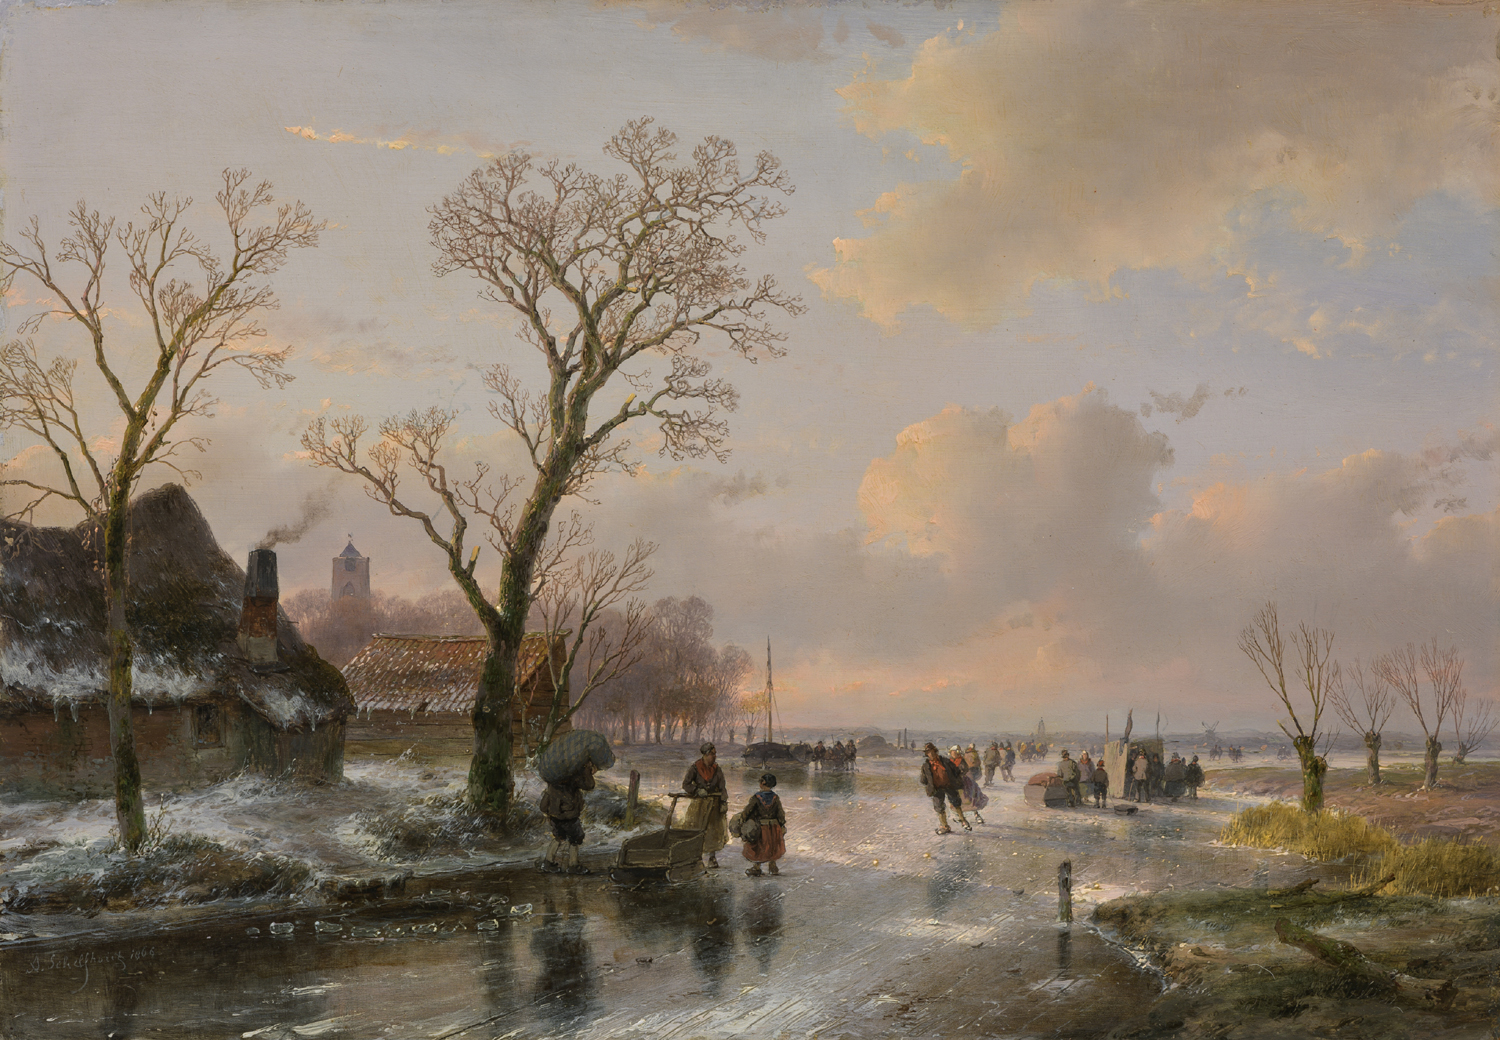 Andreas Schelfhout | A Dutch winter landscape with figures on the ice | Kunsthandel Bies| Bies Gallery